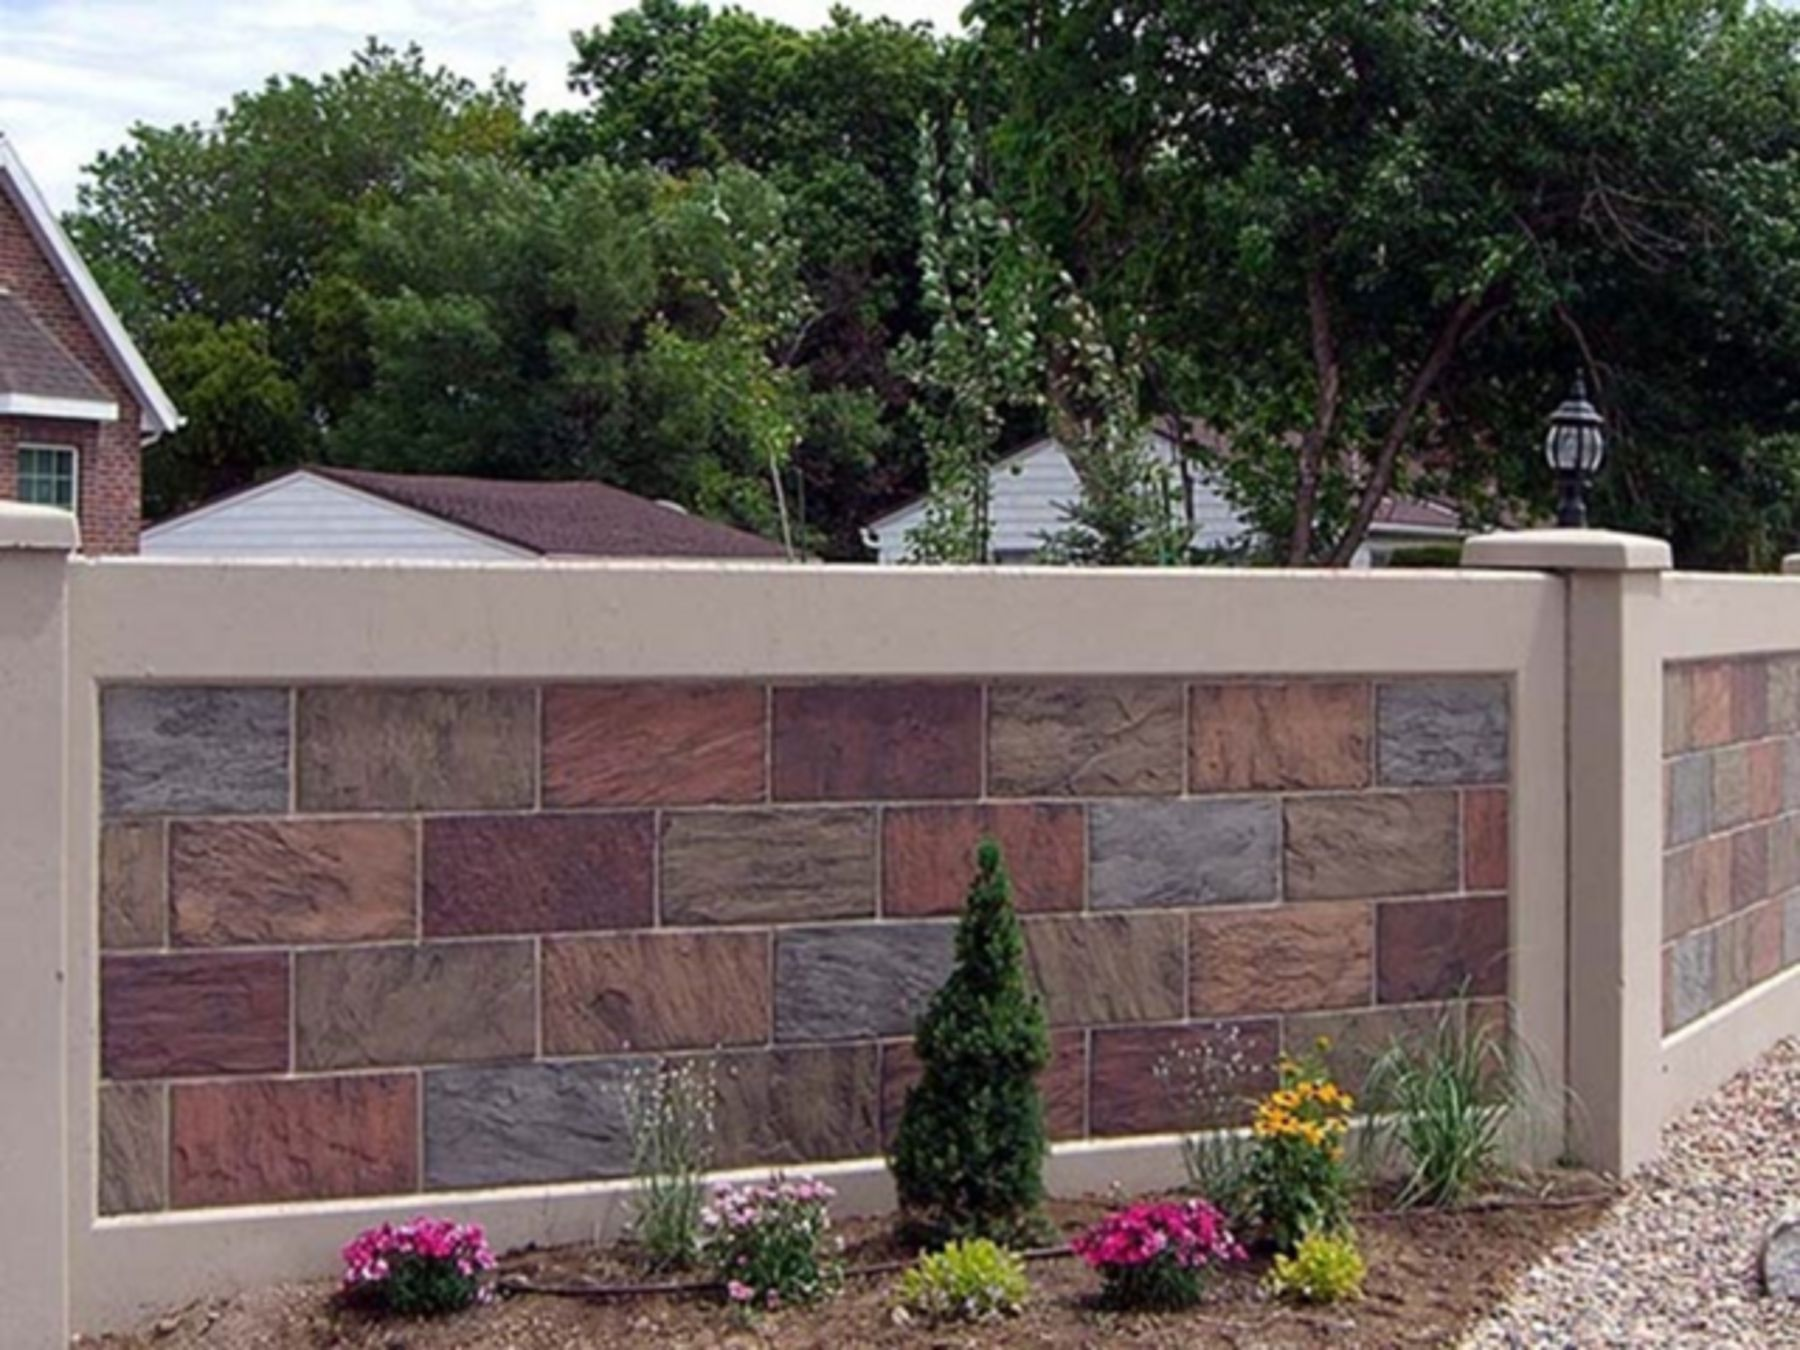 9 Interesting Fence Design Ideas To Make Your Home More Elegant Fence Wall Design Fence Design Concrete Fence